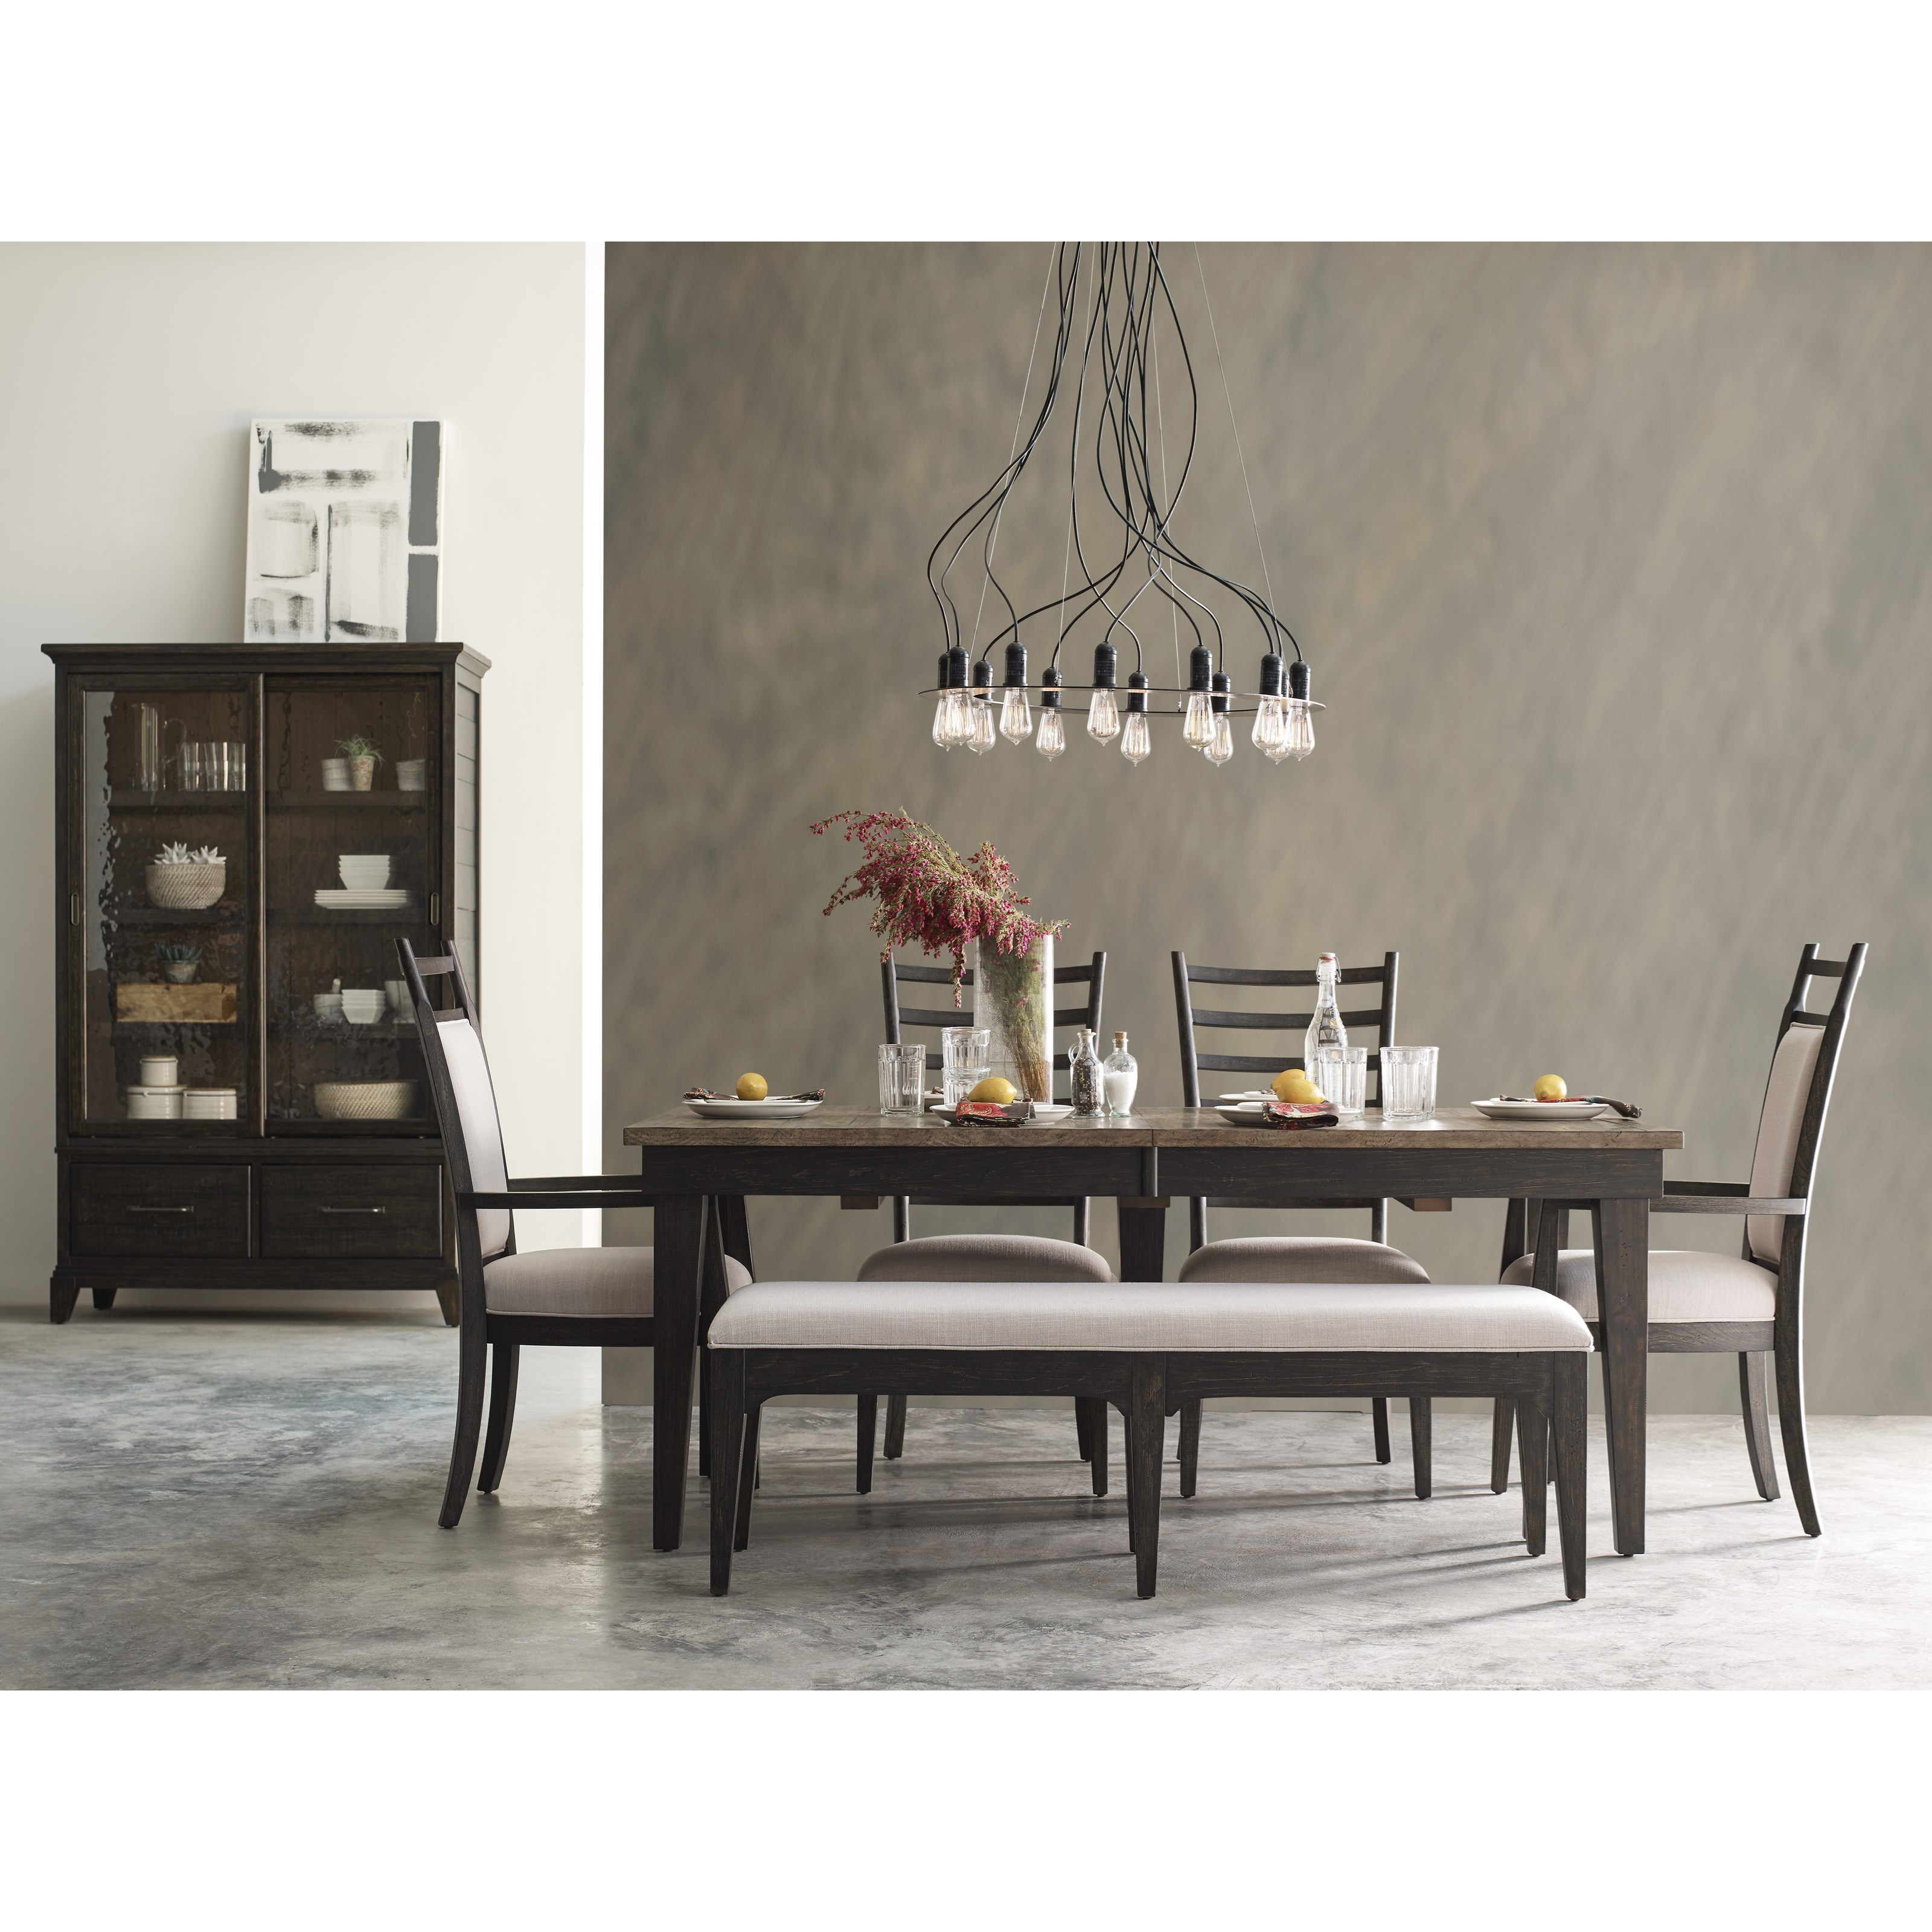 Plank Road Formal Dining Room Group by Kincaid Furniture at Stuckey Furniture